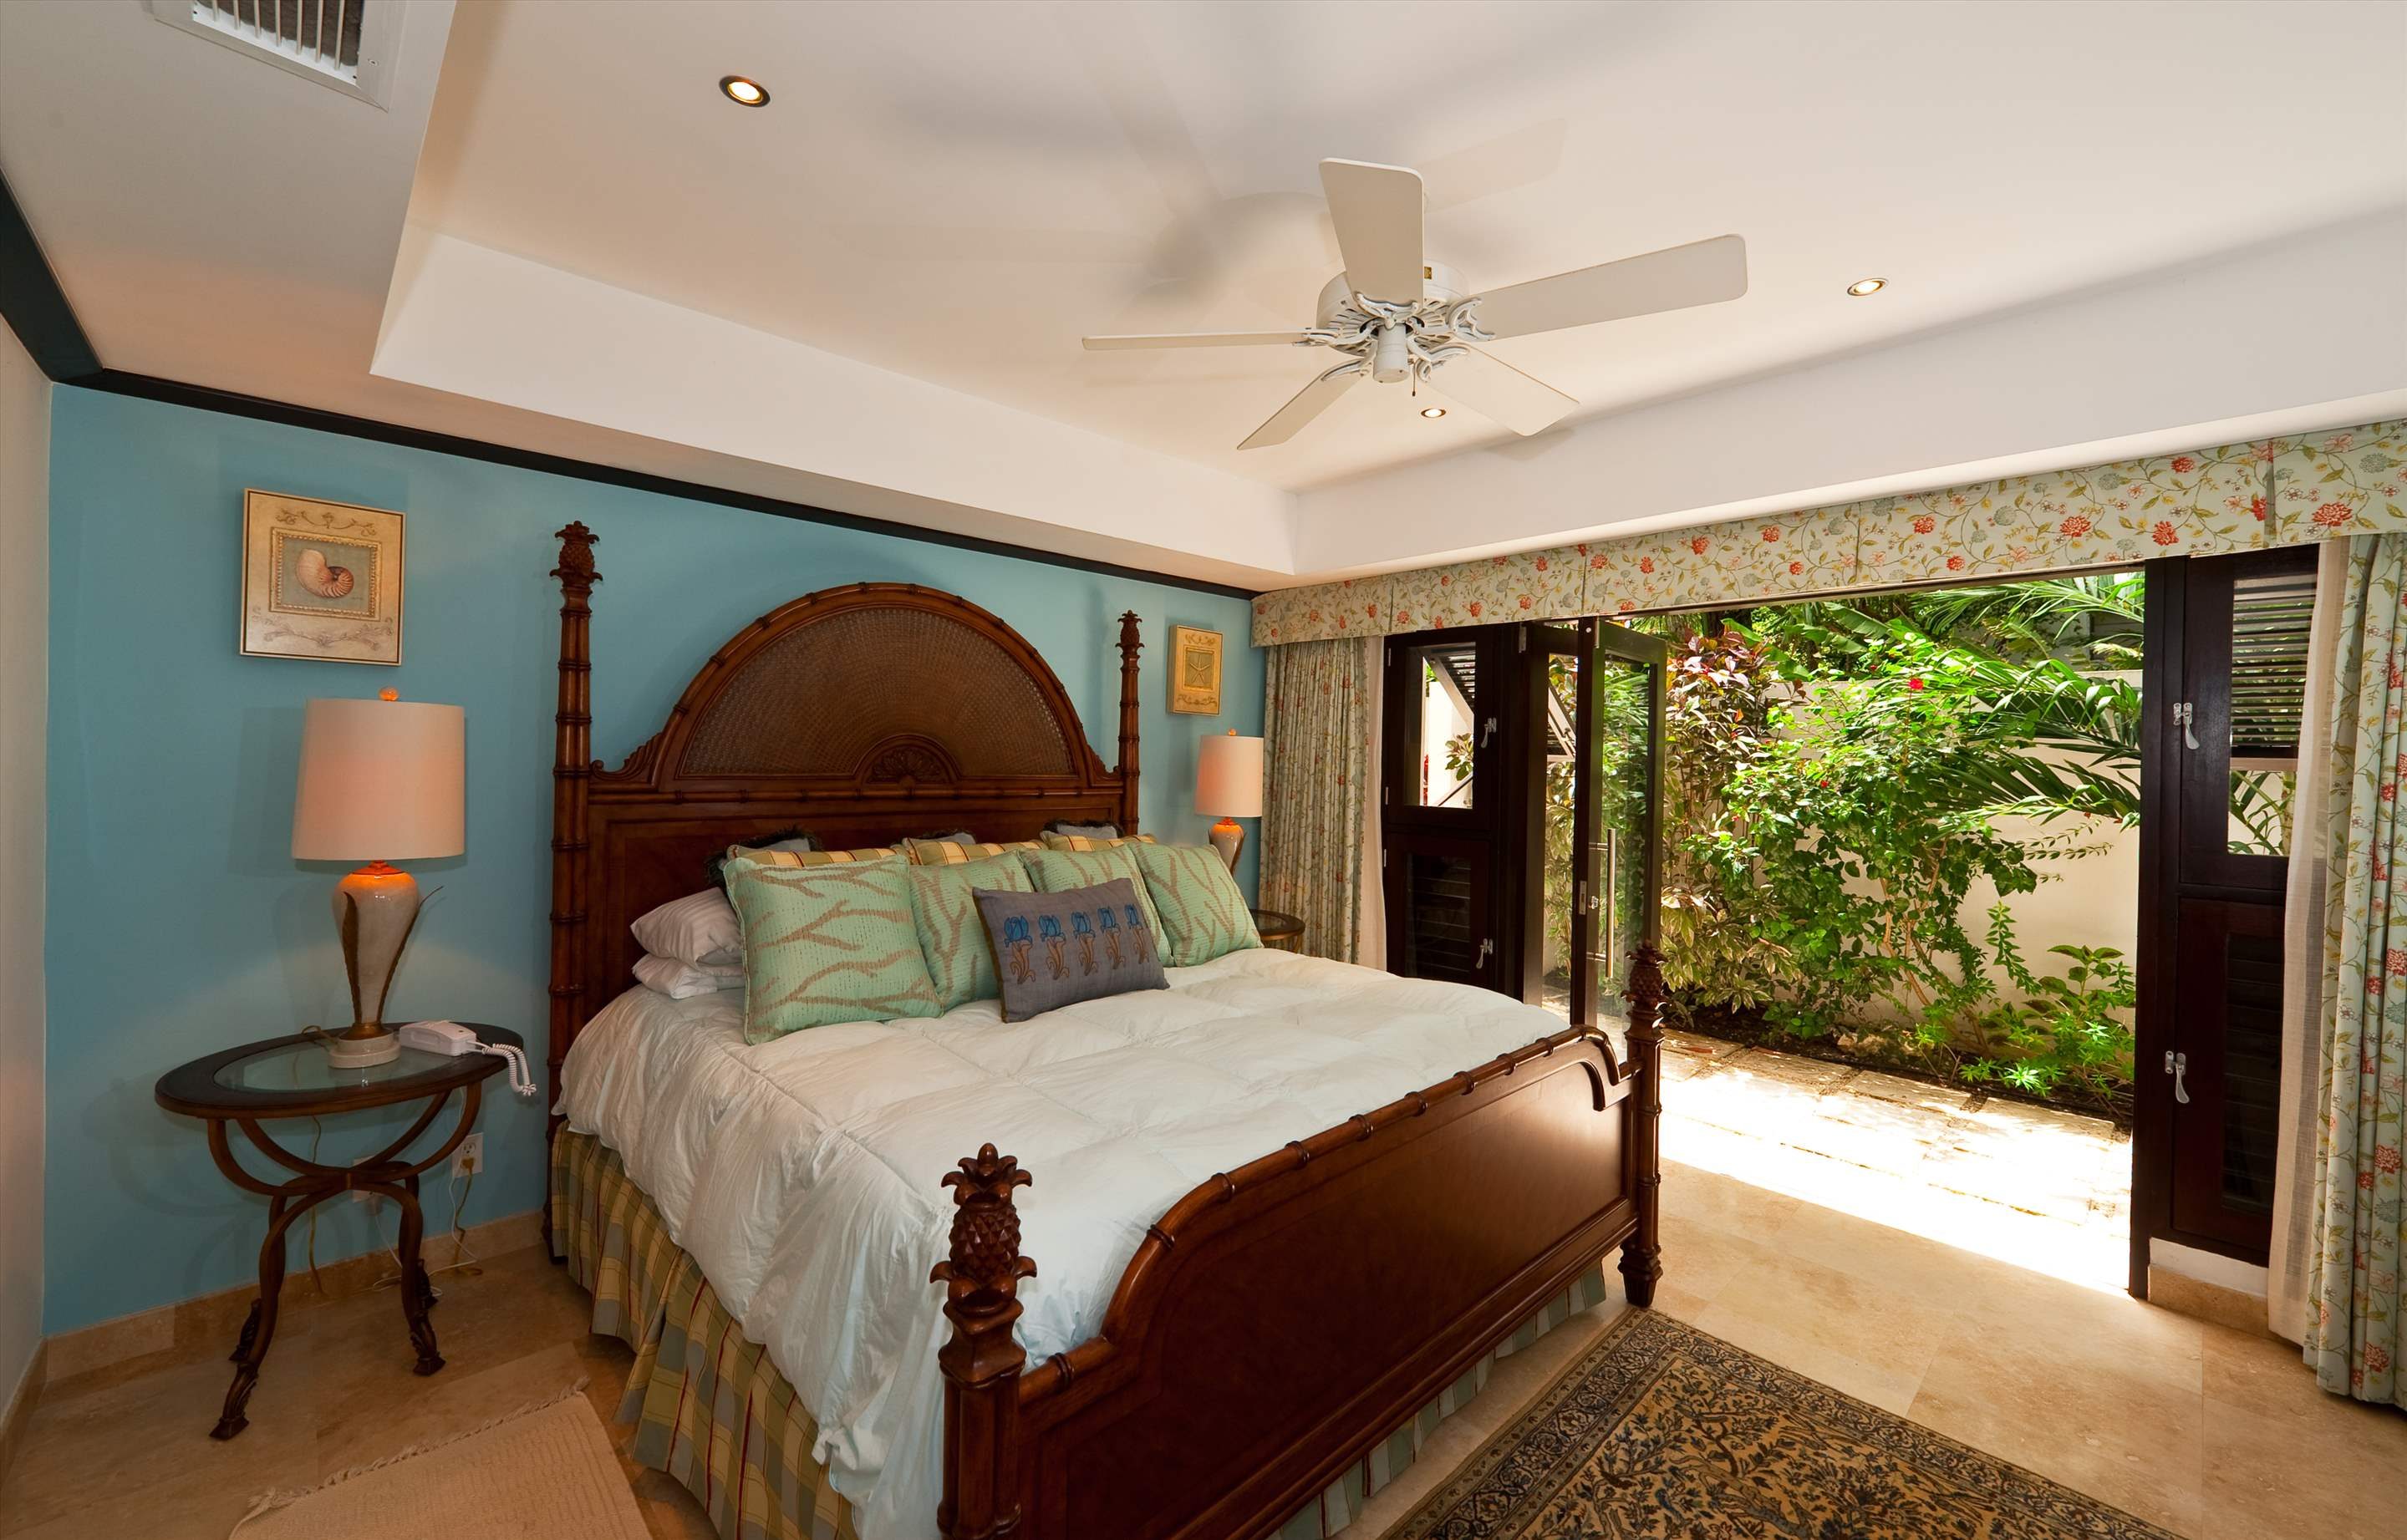 Coral Cove 3 Green Flash, 2 bedroom apartment in St. James & West Coast, Barbados Photo #7